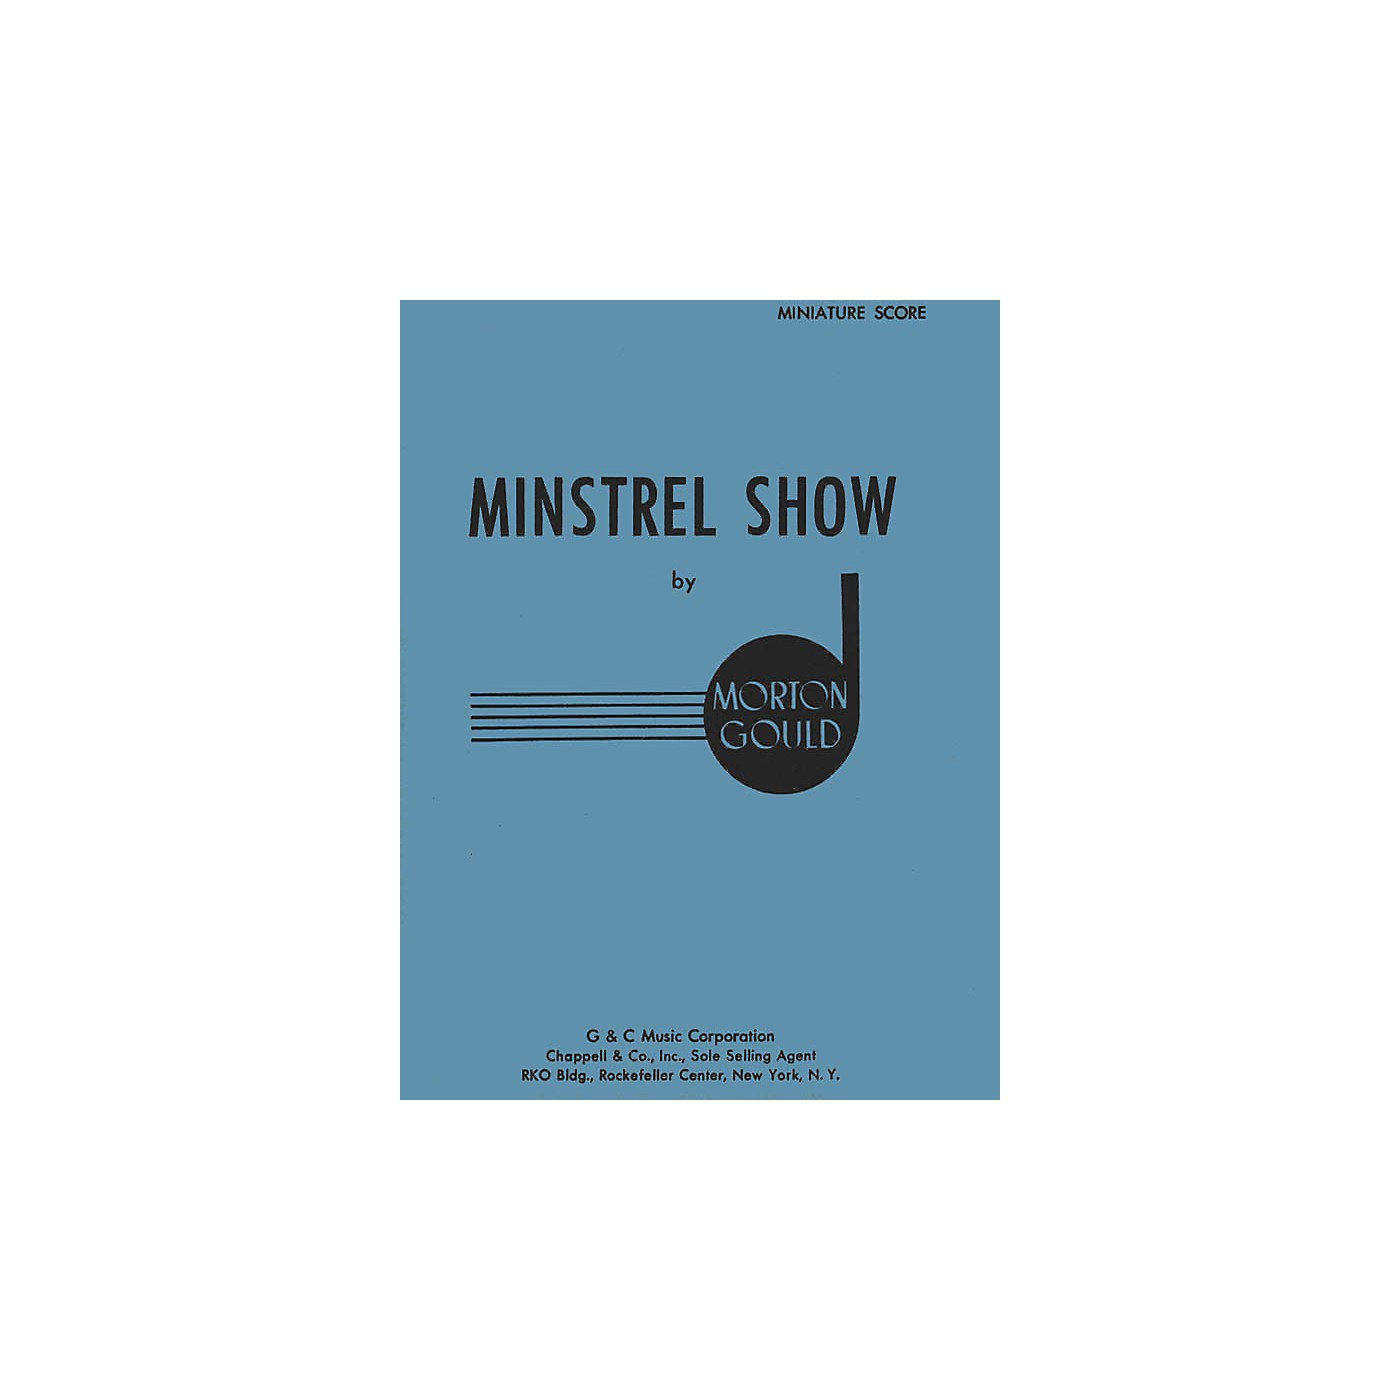 G. Schirmer Minstrel Show (Miniature Full Score) Study Score Series Composed by Morton Gould thumbnail